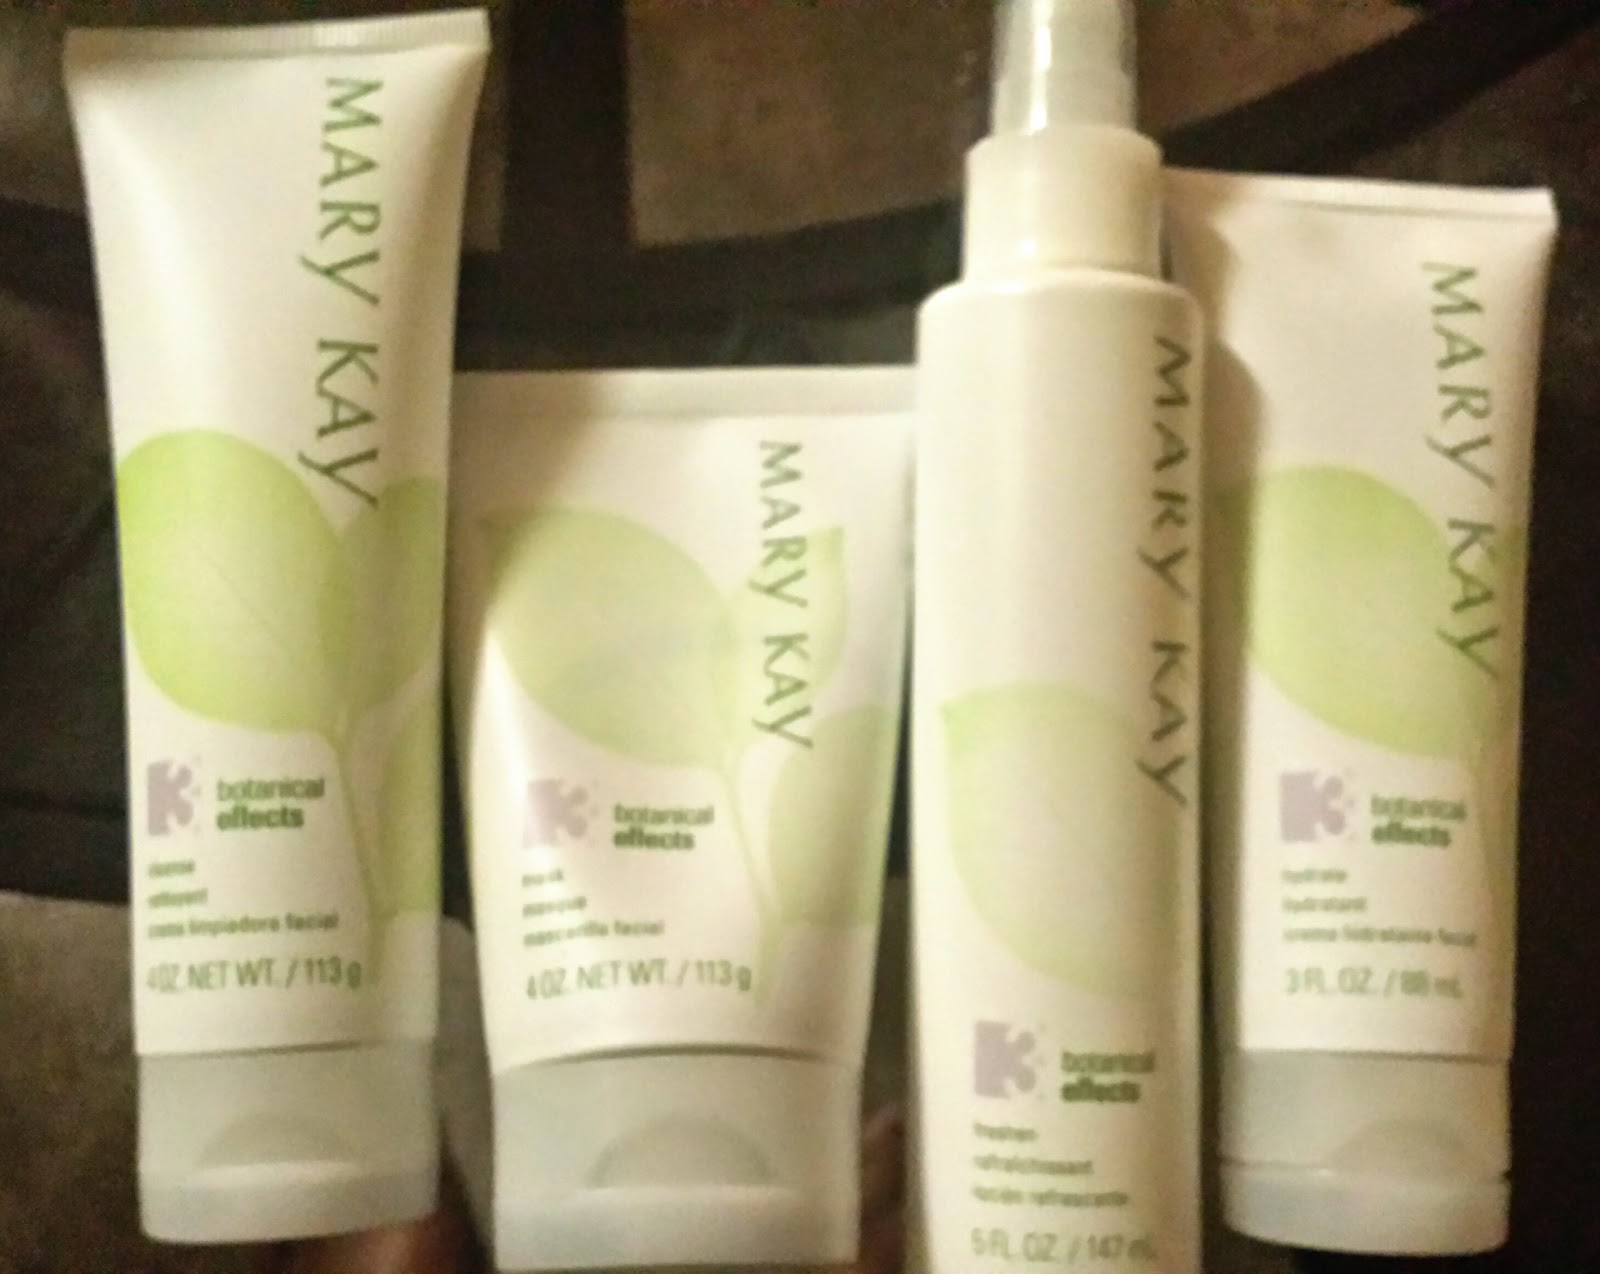 Mary Kay's Botanical Effects™ Skin Care Four Piece Set and Makeup Review via ProductReviewMom.com